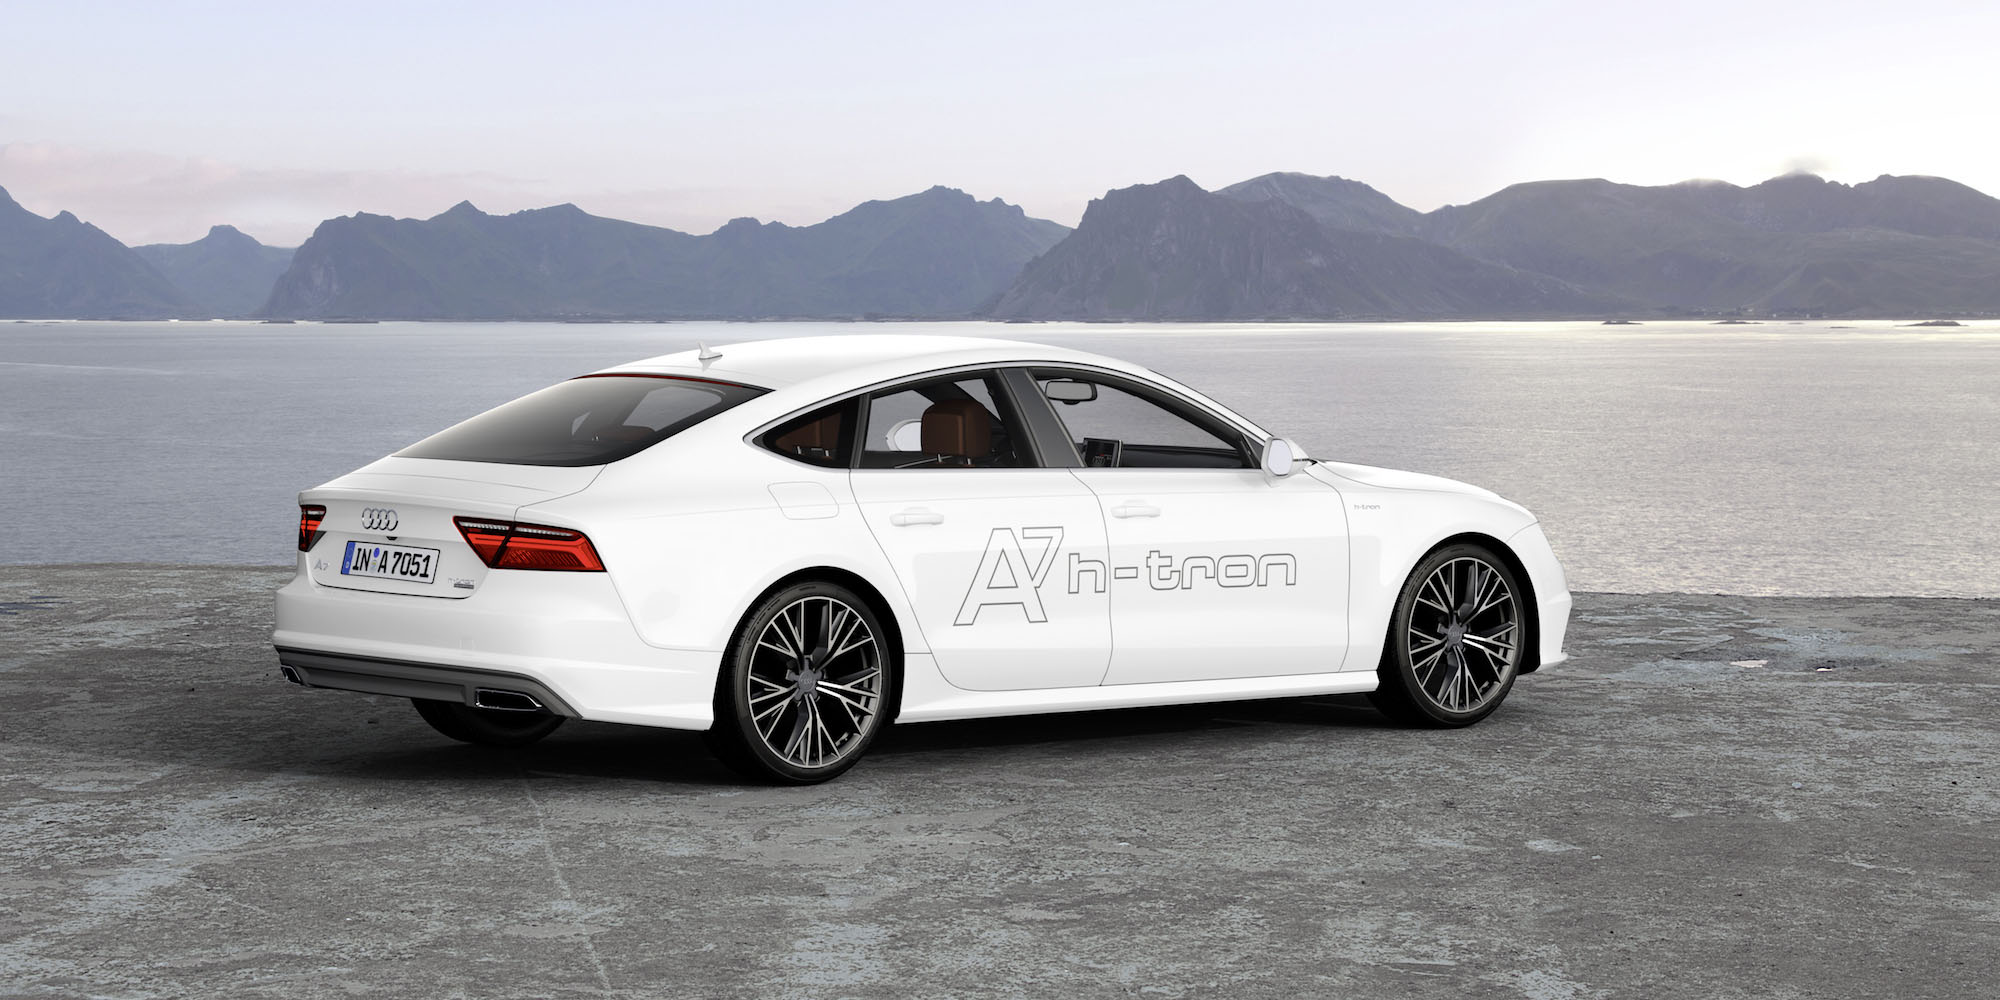 audi a7 sportback h tron quattro review photos caradvice. Black Bedroom Furniture Sets. Home Design Ideas